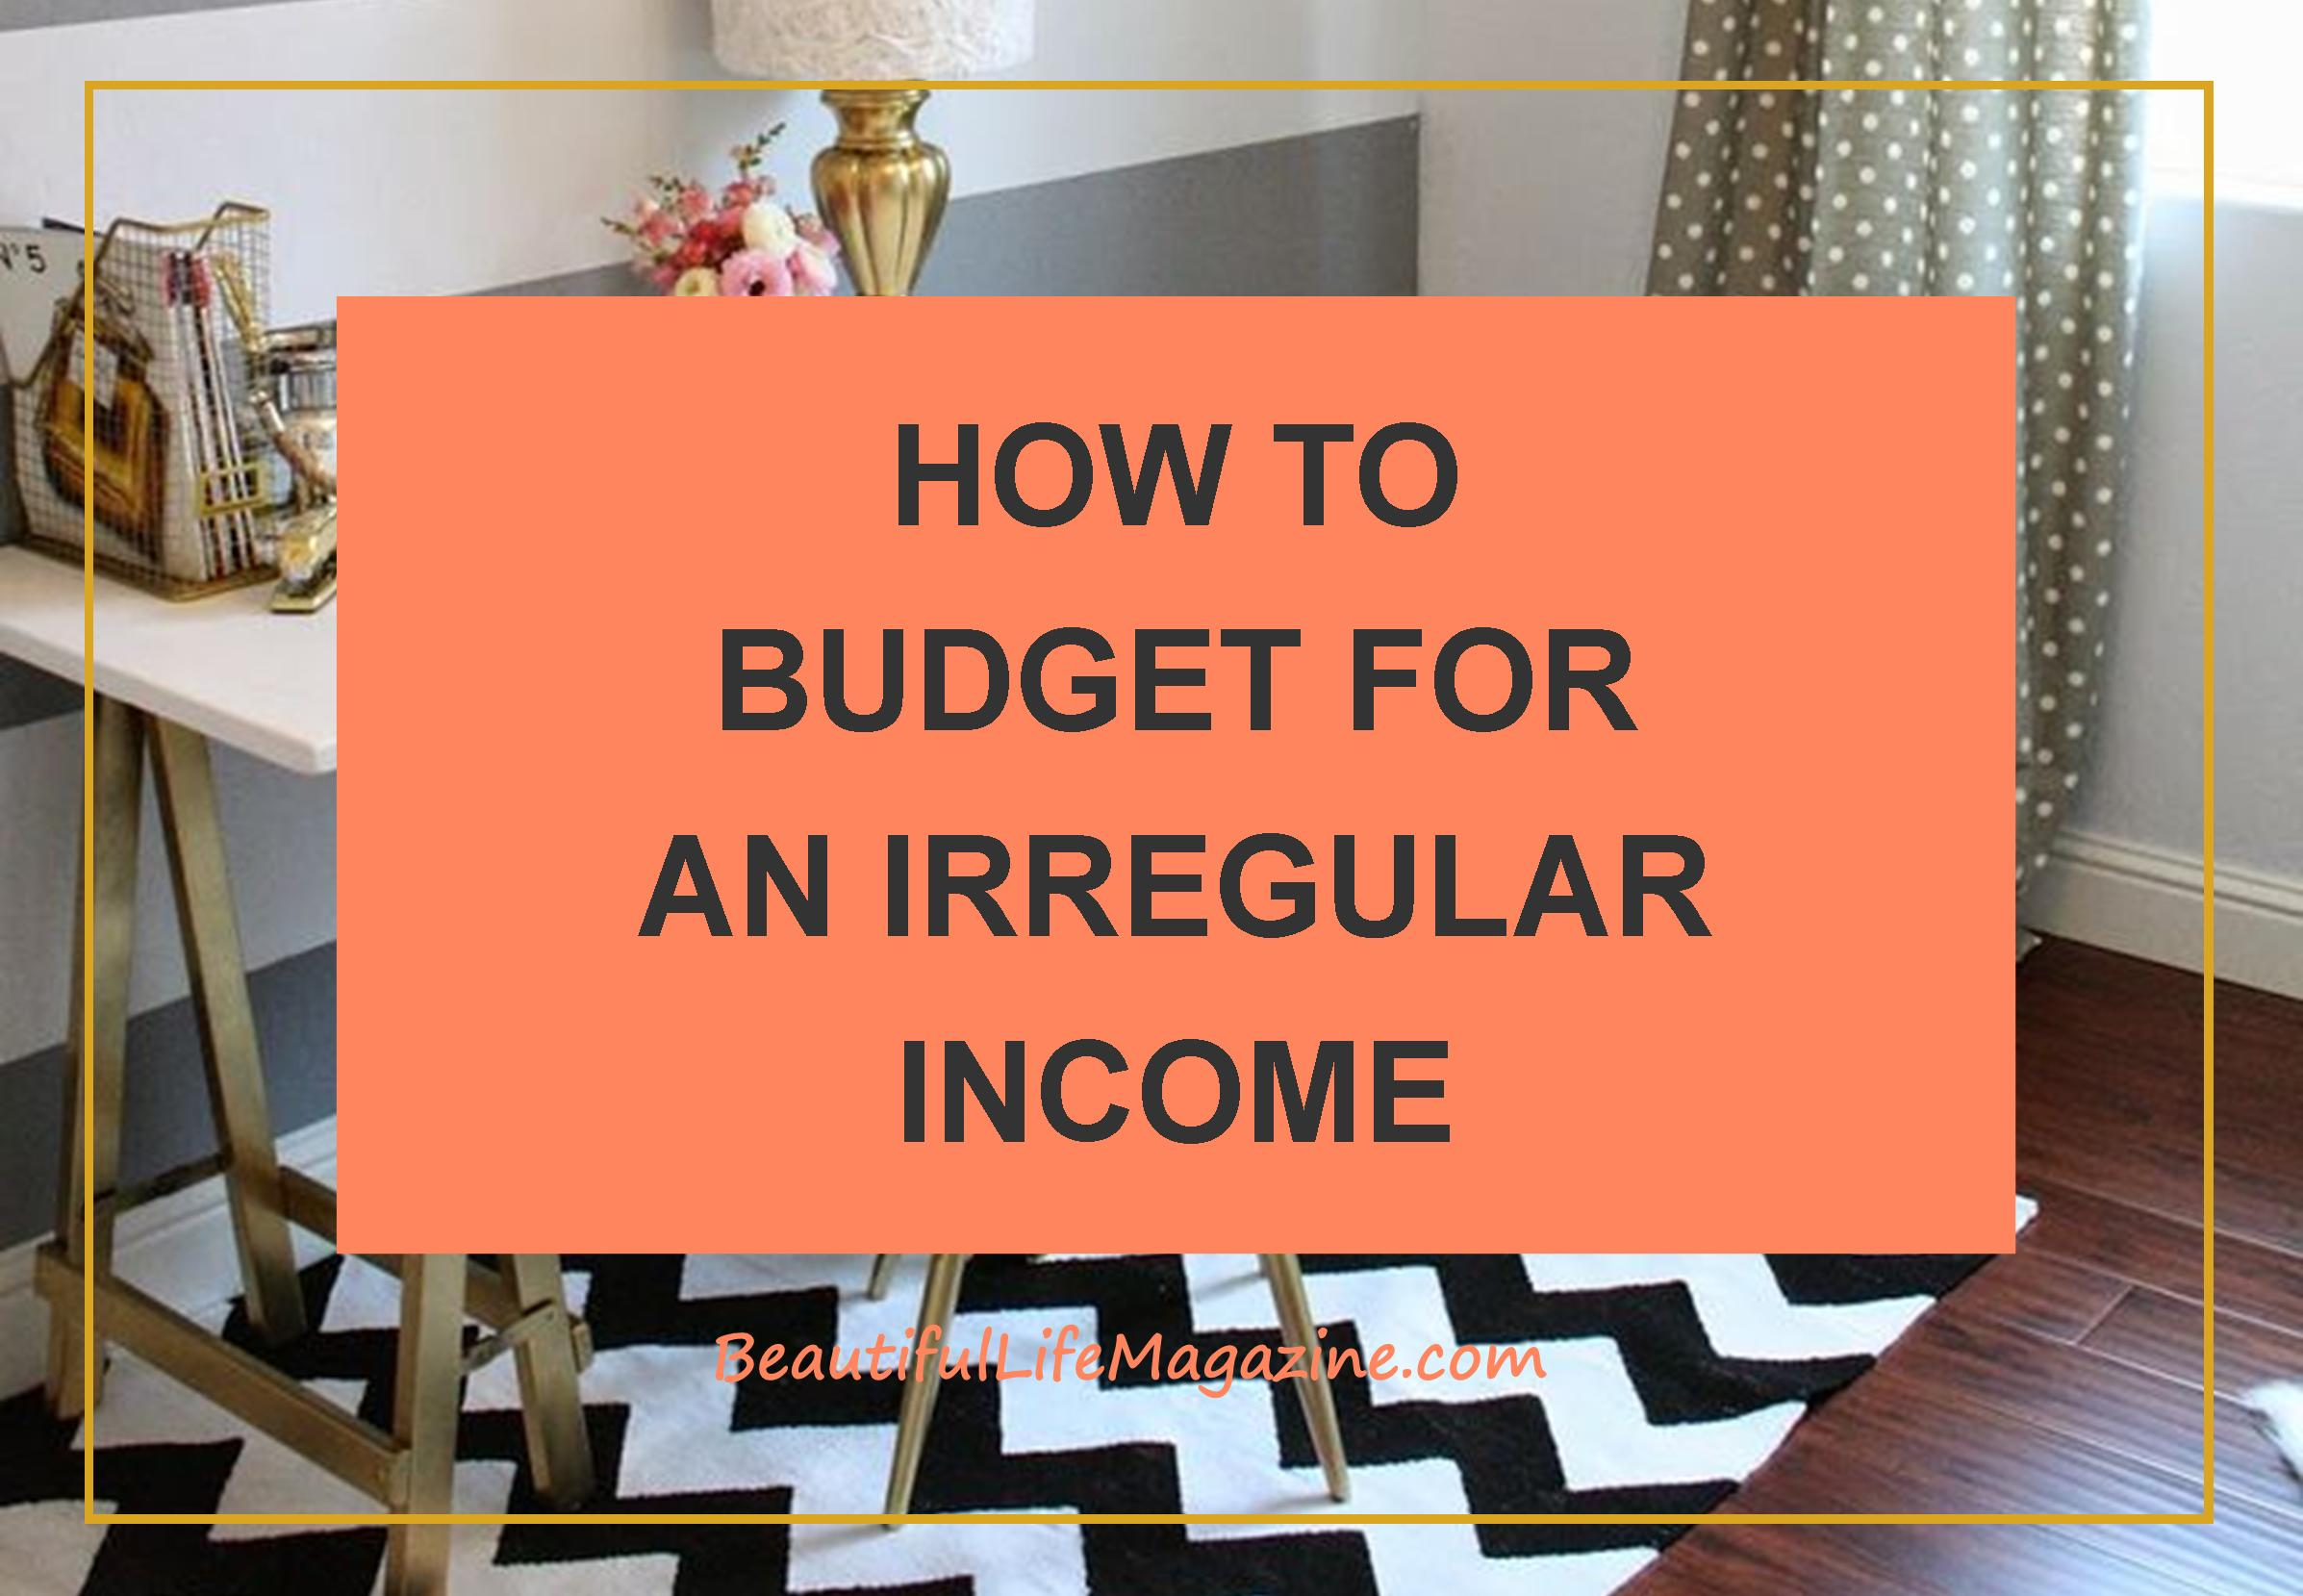 When you make an inconsistent income, budgeting is more important than ever. During the good times, you need to plan carefully.